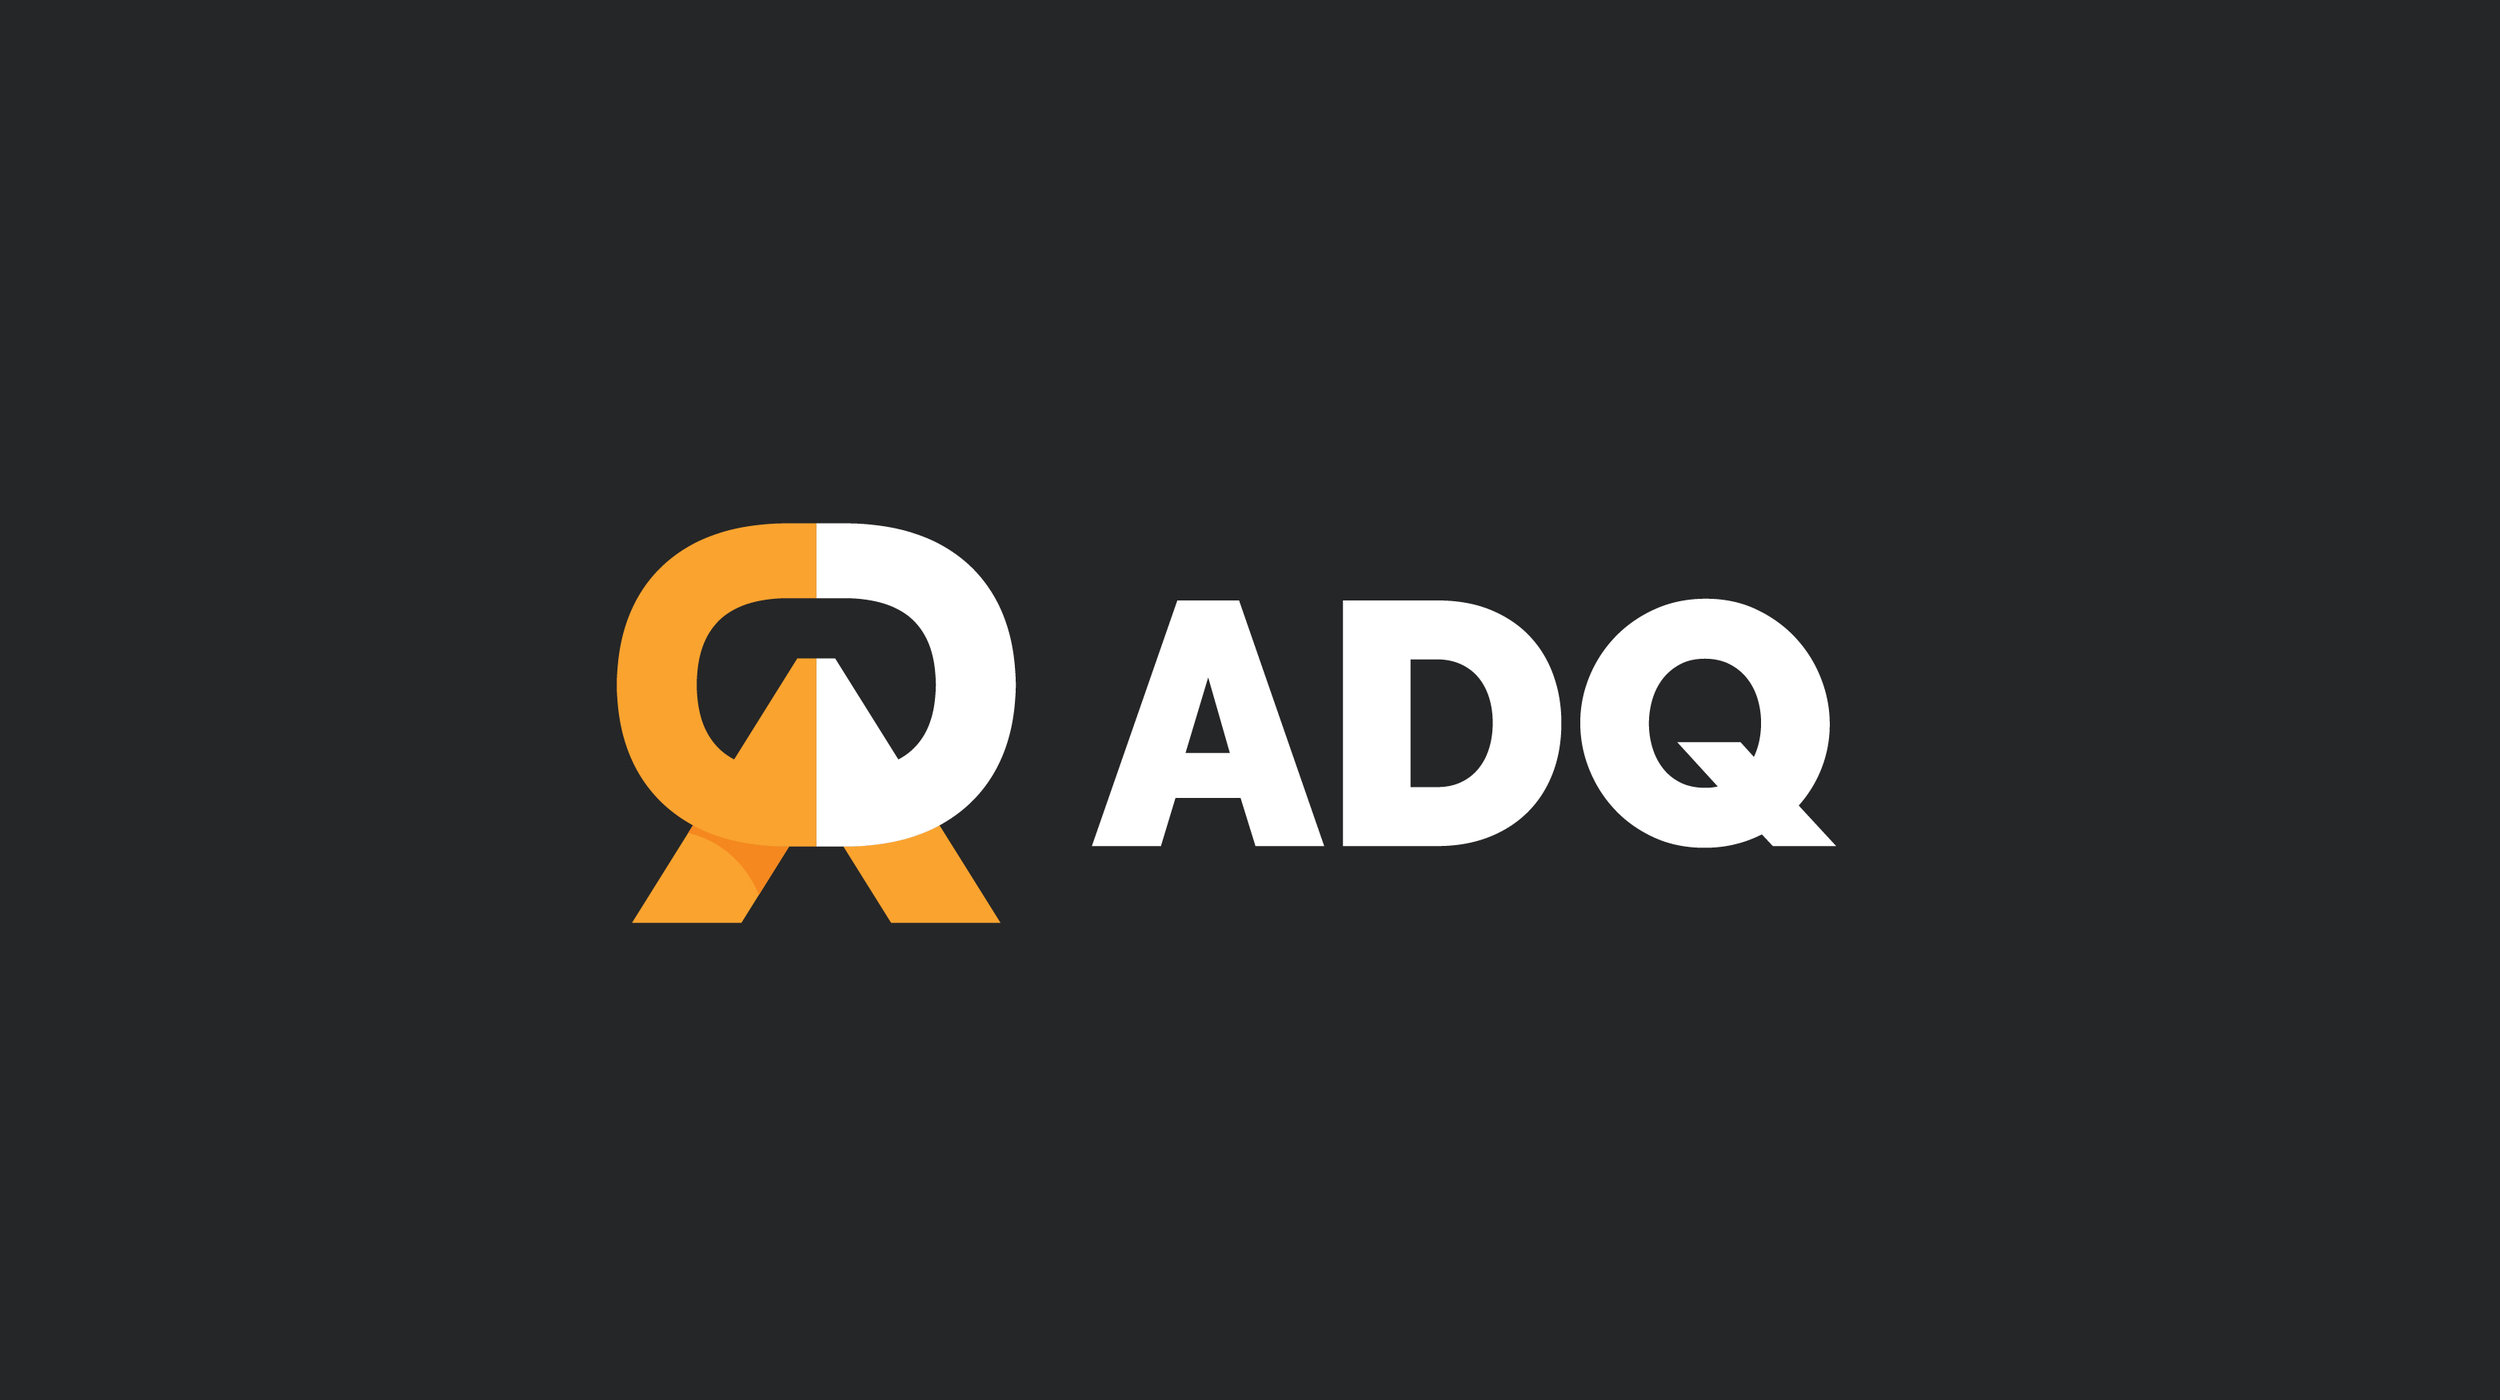 Making sense of data overload - ADQ solves the problem of having terabytes of data but not knowing how to make it useful. Visualizing this was the largest challenge of the project.